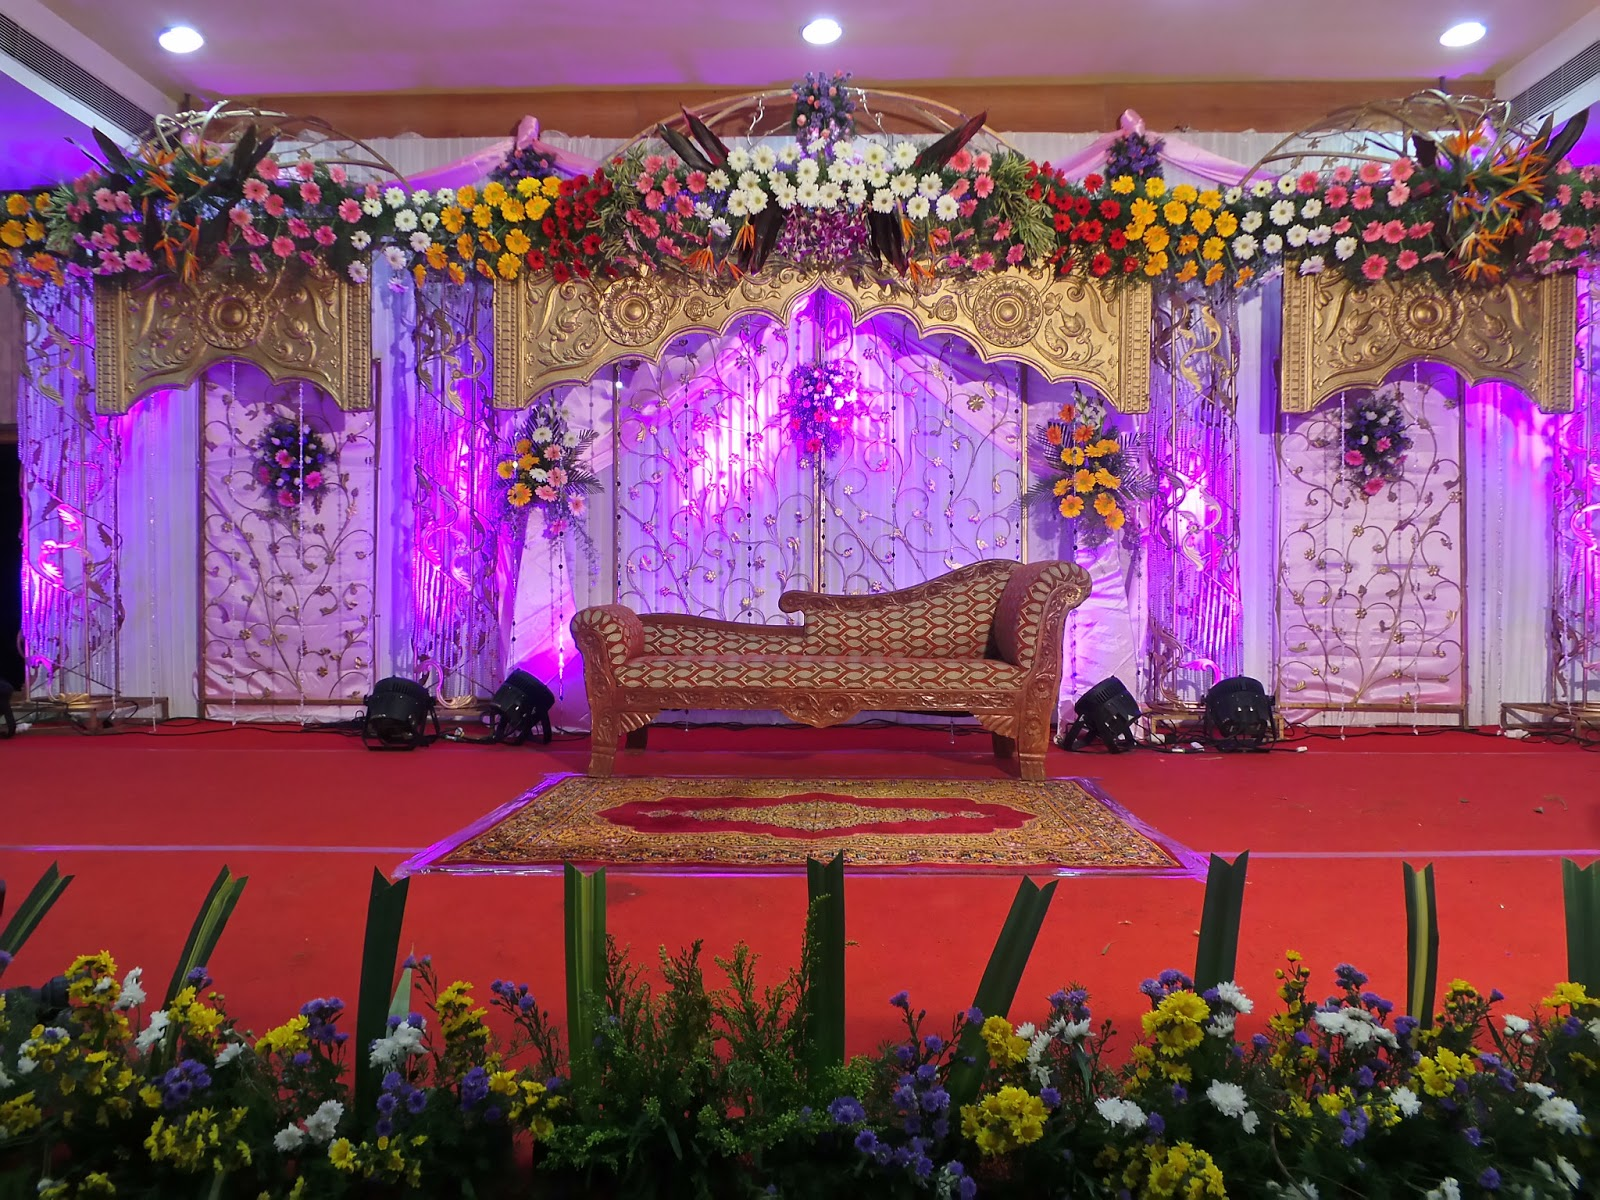 Wedding reception stage decorations chennai wedding decorators in wedding reception stage decorations chennai wedding decorators in chennai junglespirit Gallery